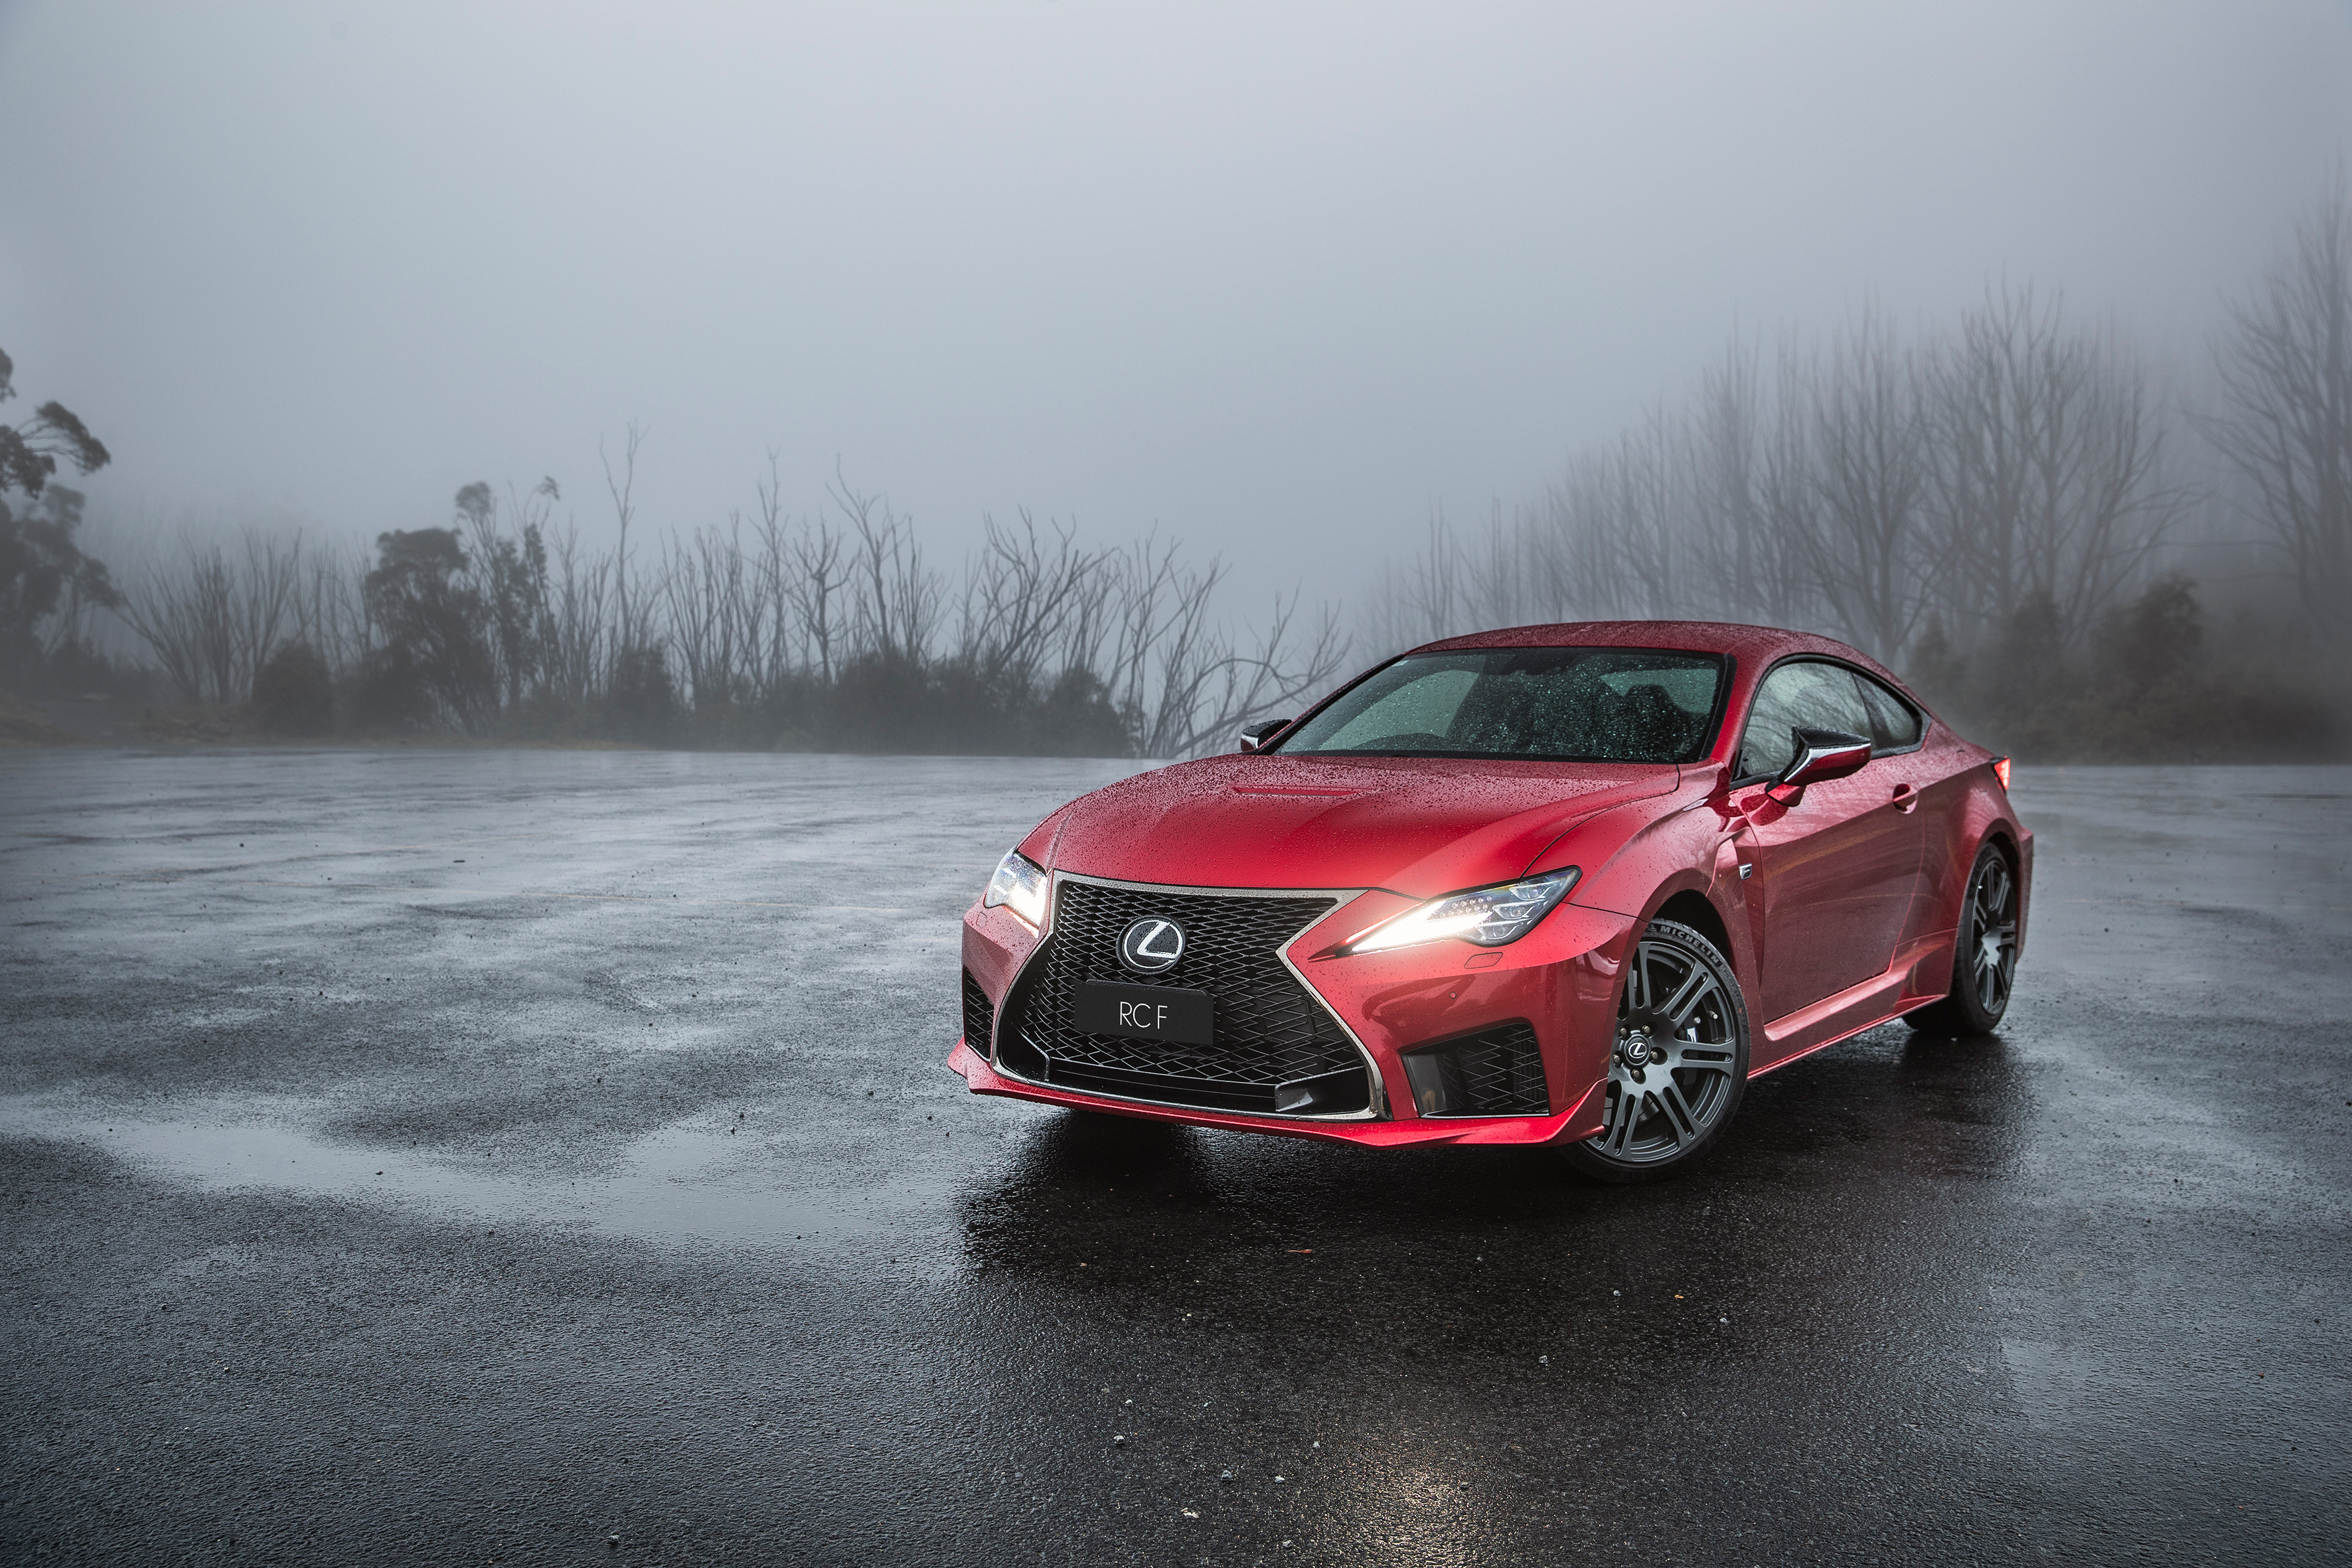 Lexus Rcf 2019 Hd Cars 4k Wallpapers Images Backgrounds Photos And Pictures